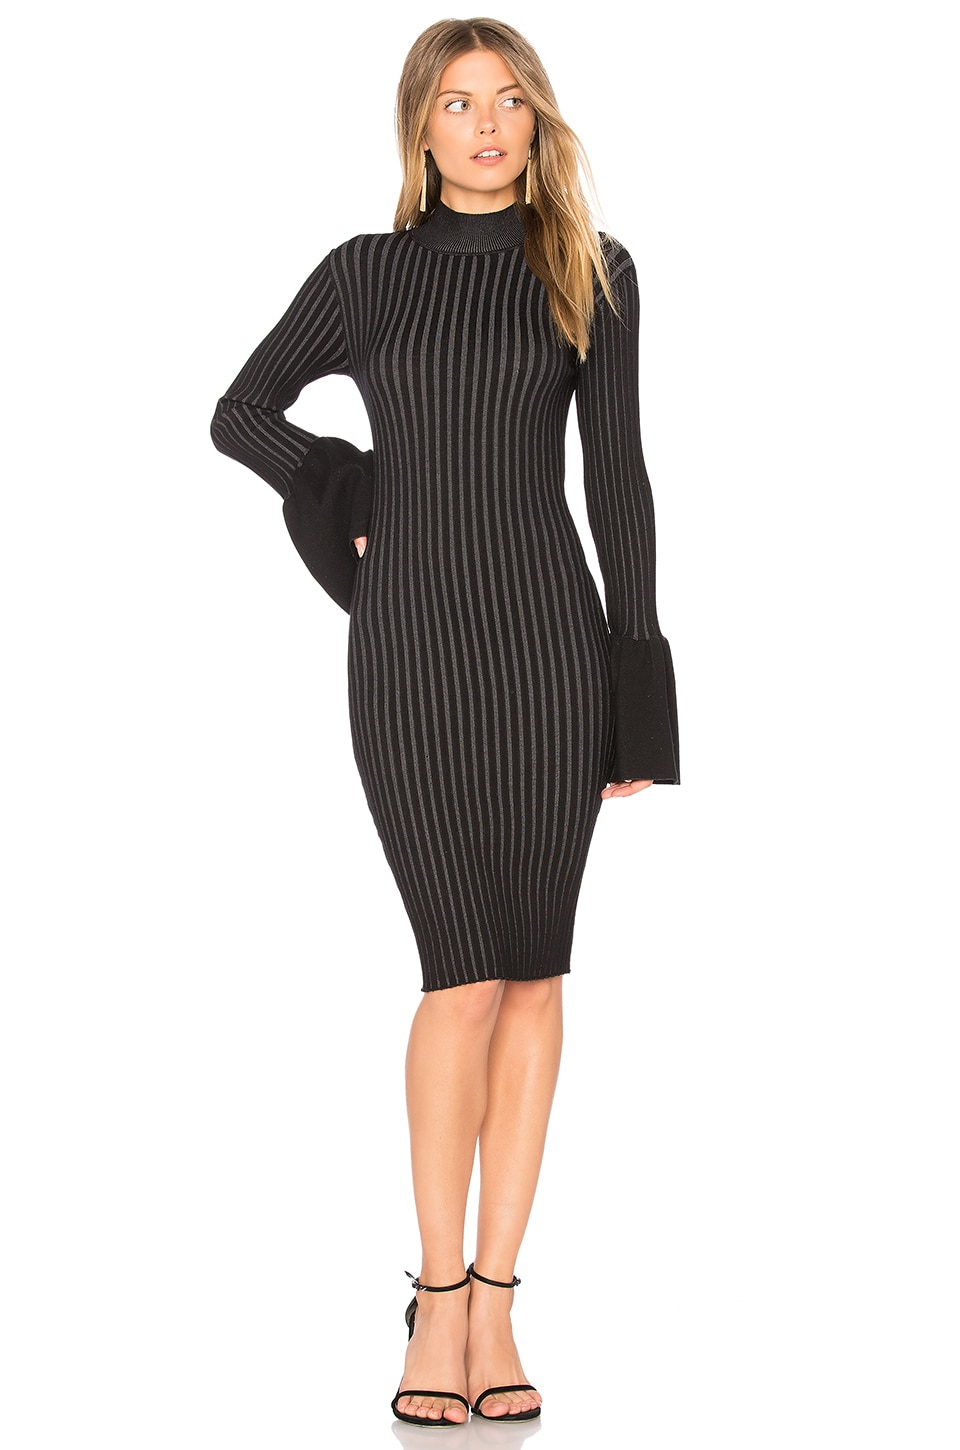 Coconut Grove Bell Sleeve Dress by Central Park West